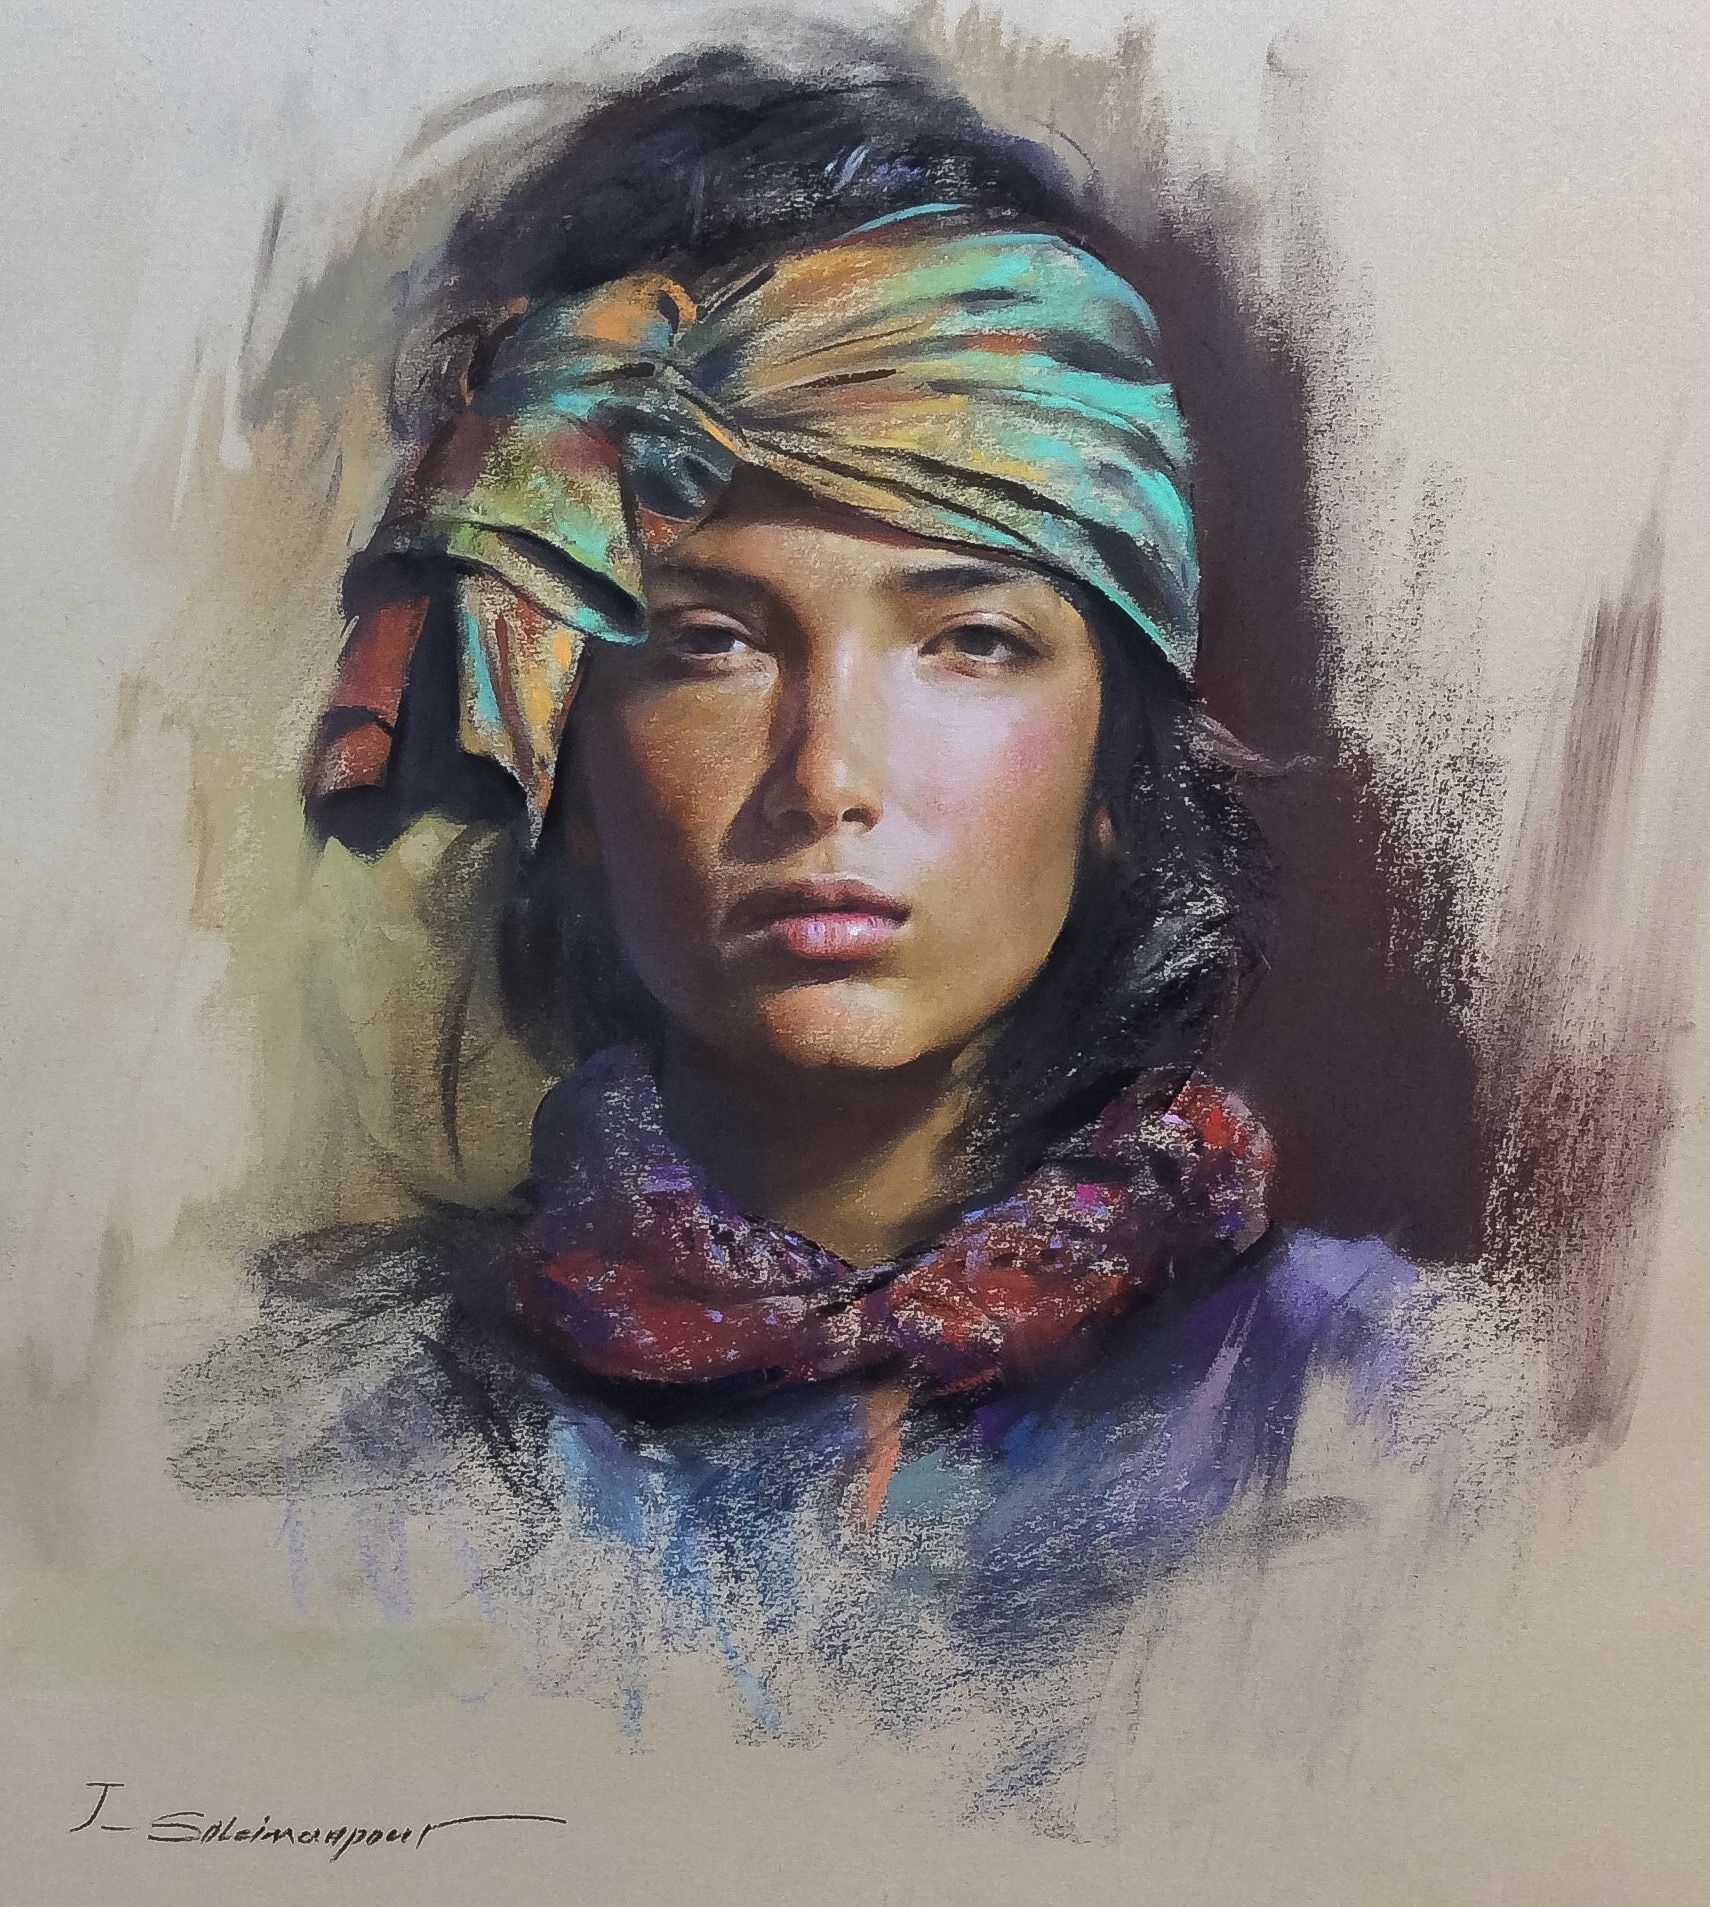 Epingle Par Eliane Bordarier Sur Idees Pastel En 2019 Dessin